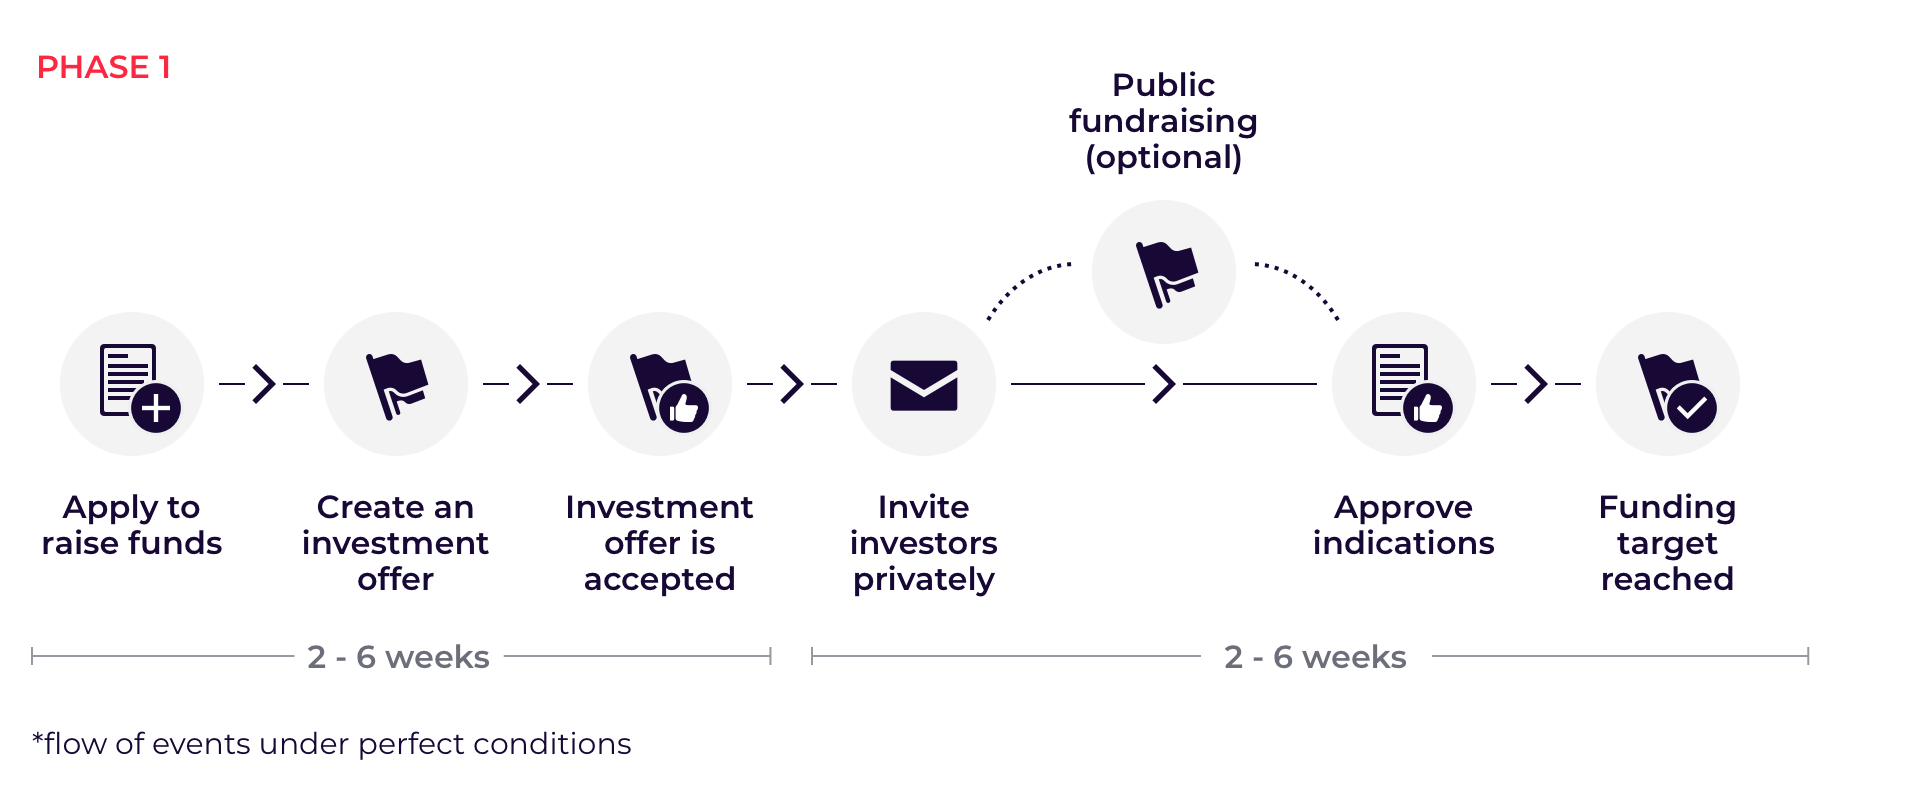 Phase 1 of the funding process